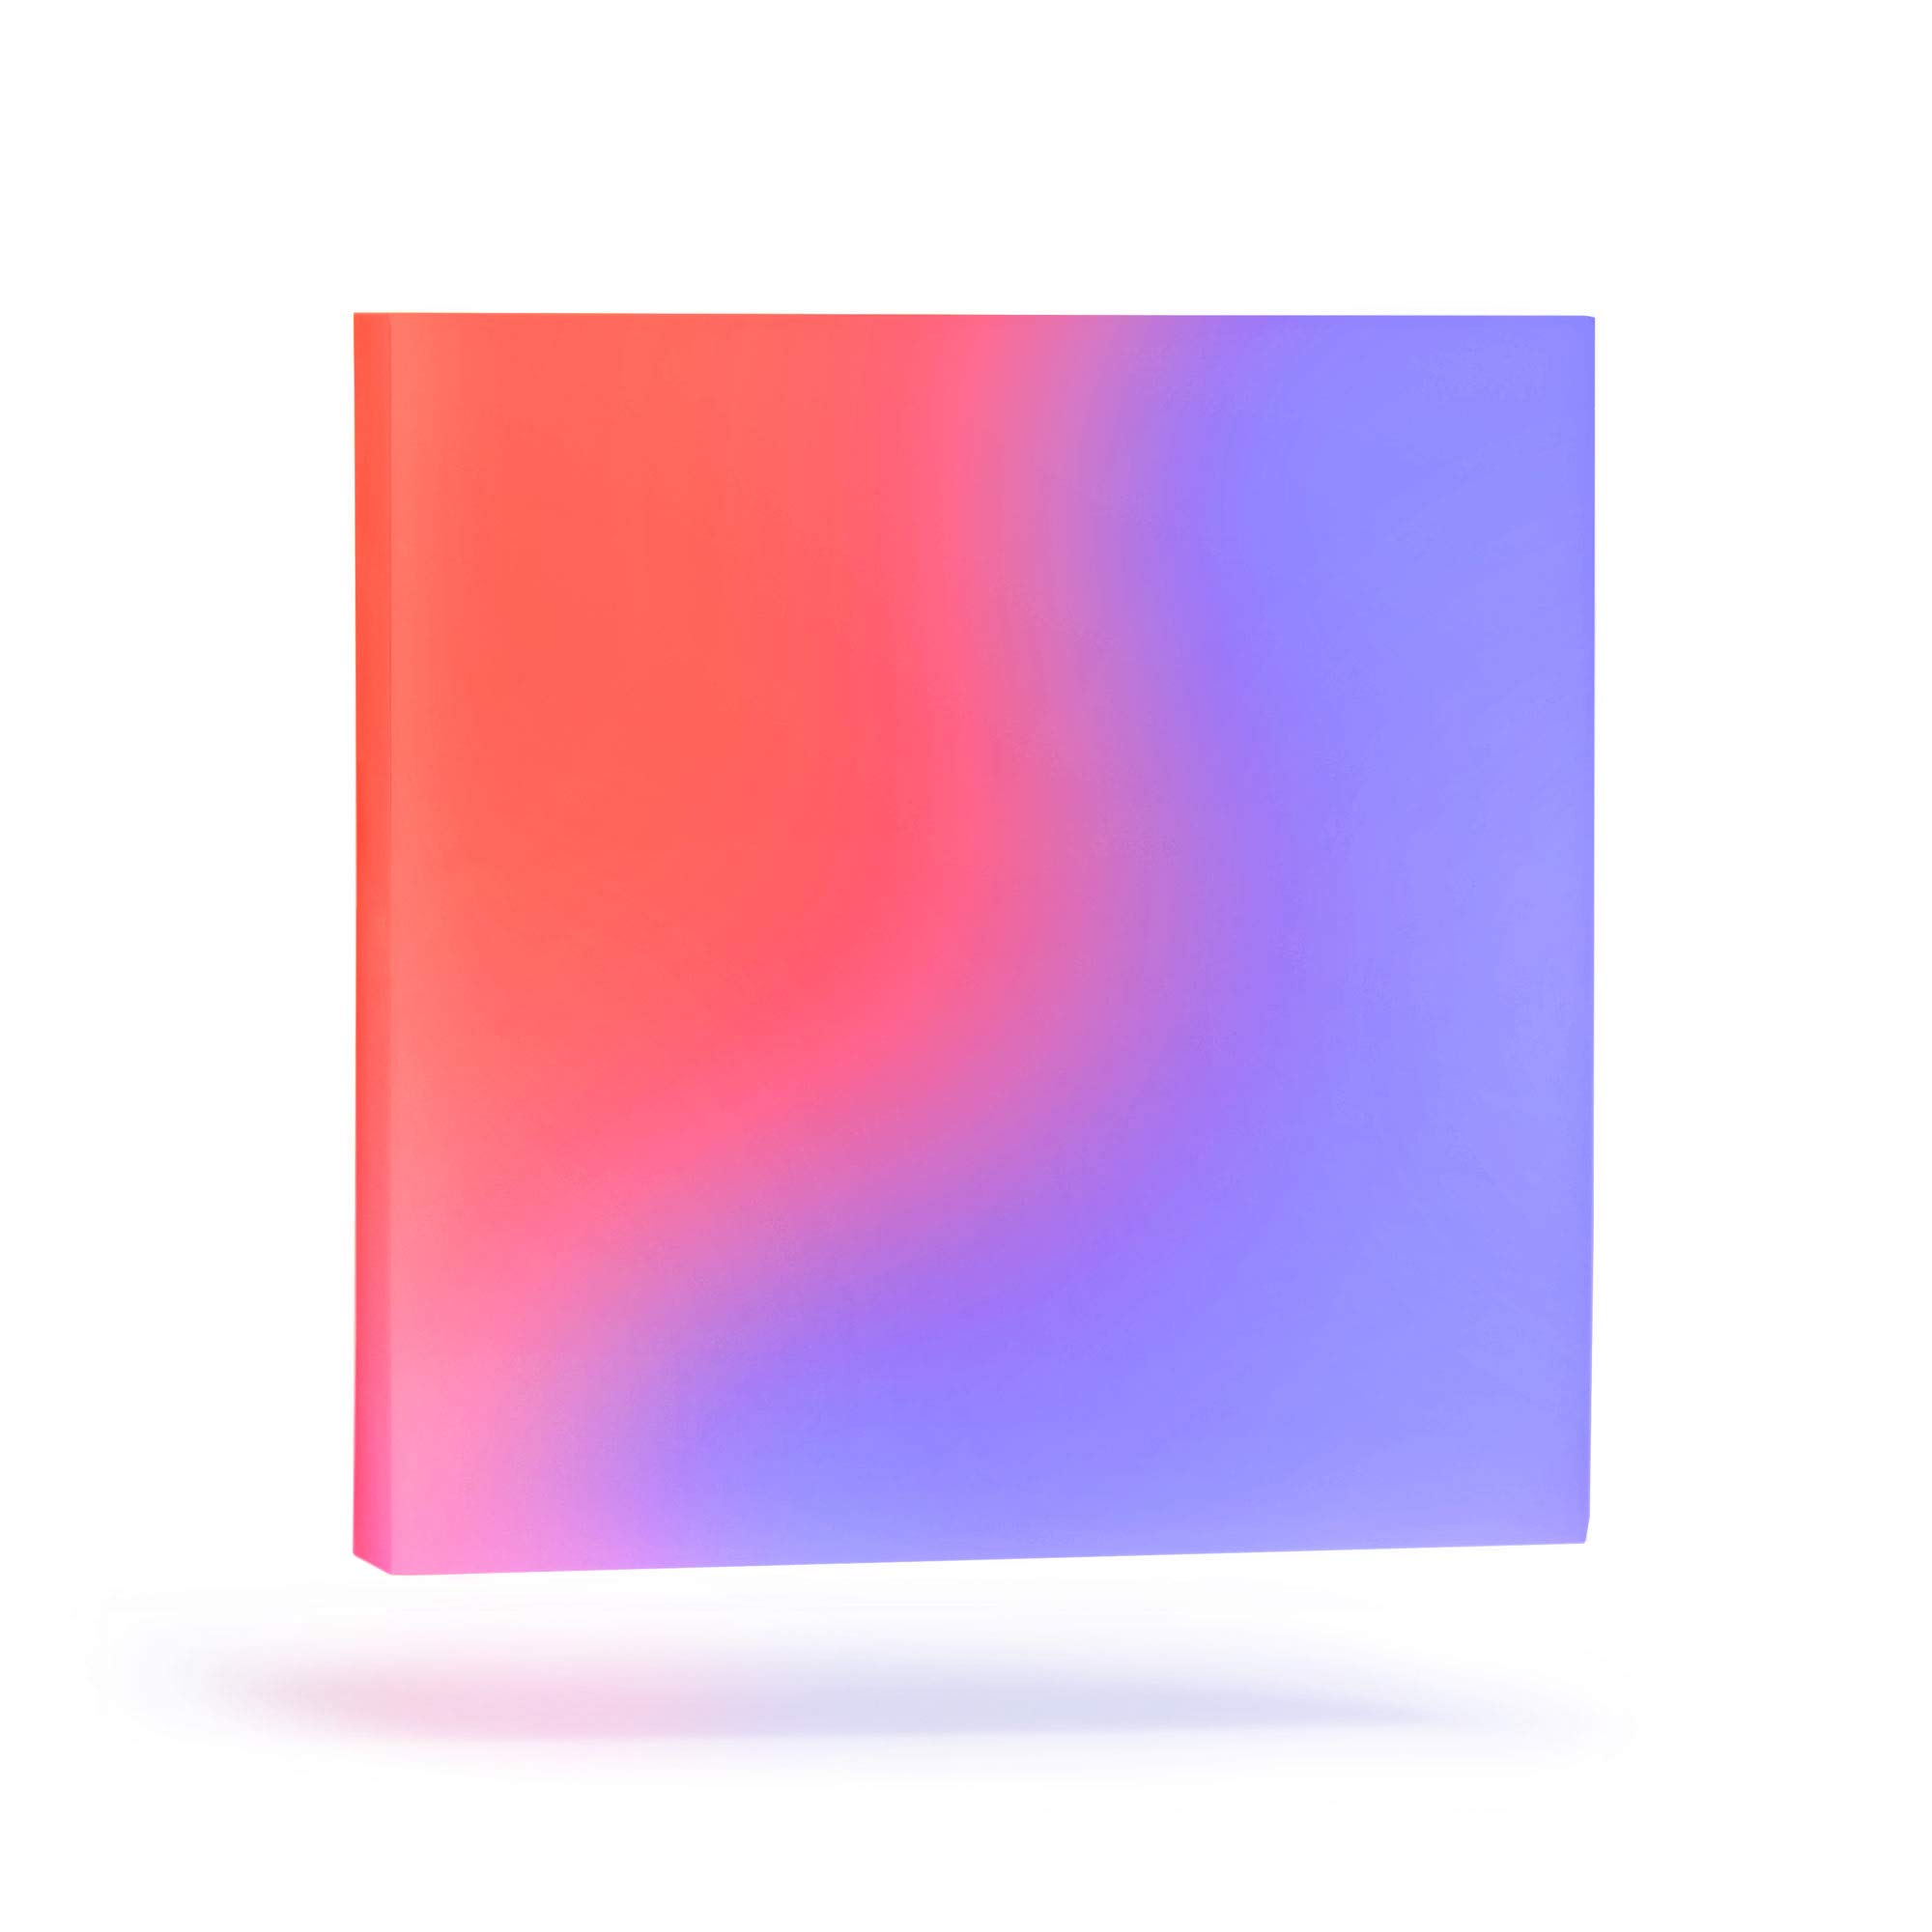 LIFX Tile Modular Light, Tile Light, Color Changing, Dimmable, No Hub Required, App and Voice Control, Works with Amazon Alexa, Apple HomeKit, Google Assistant and Microsoft Cortana - 5 Pack